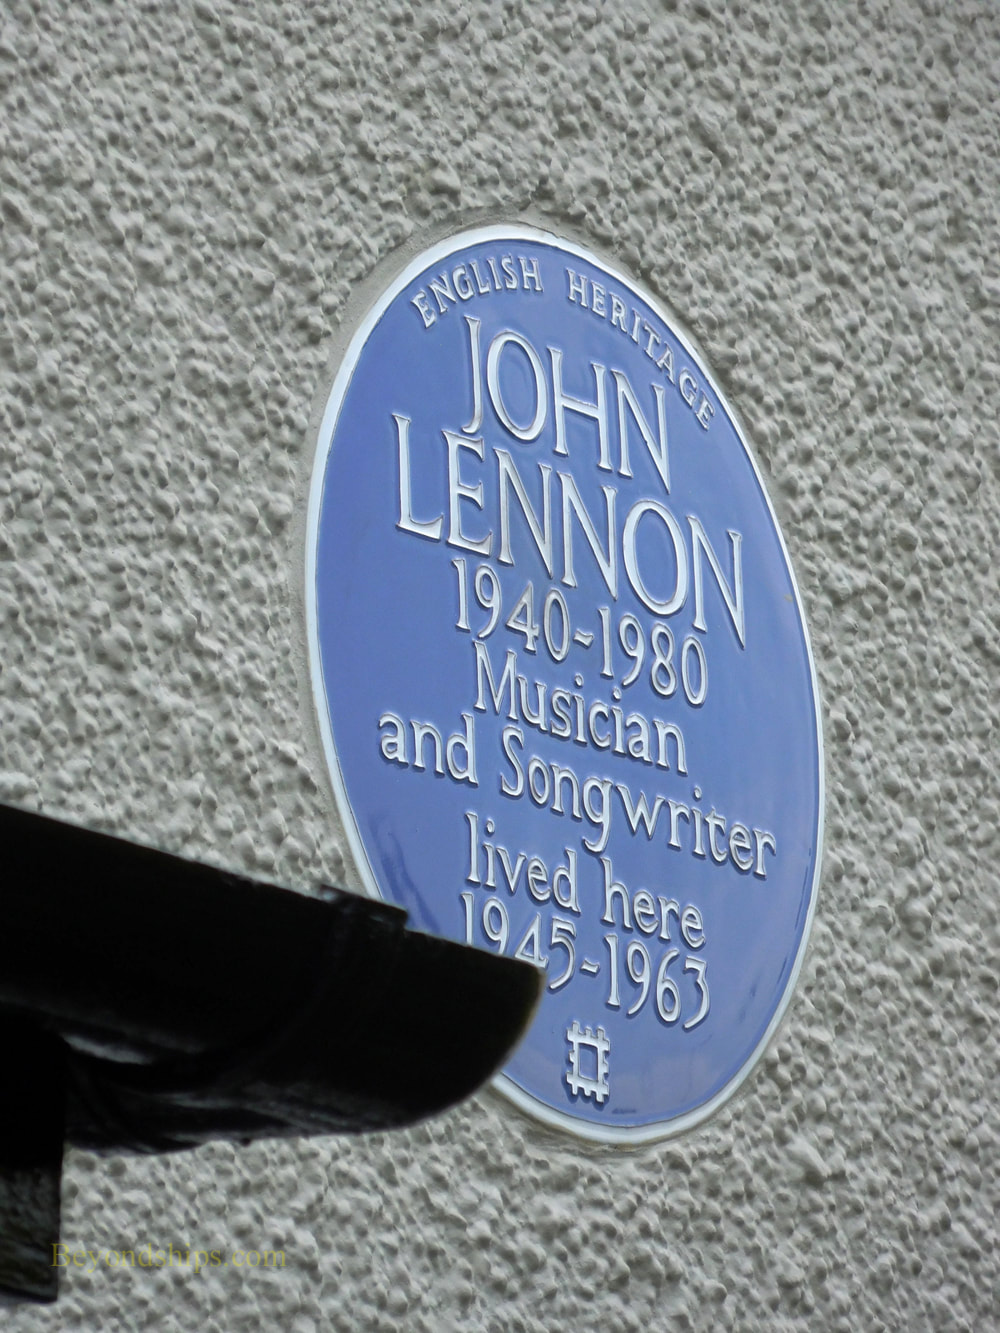 Blue plaque showing that Jon Lennon lived at Menips, Liverpool England